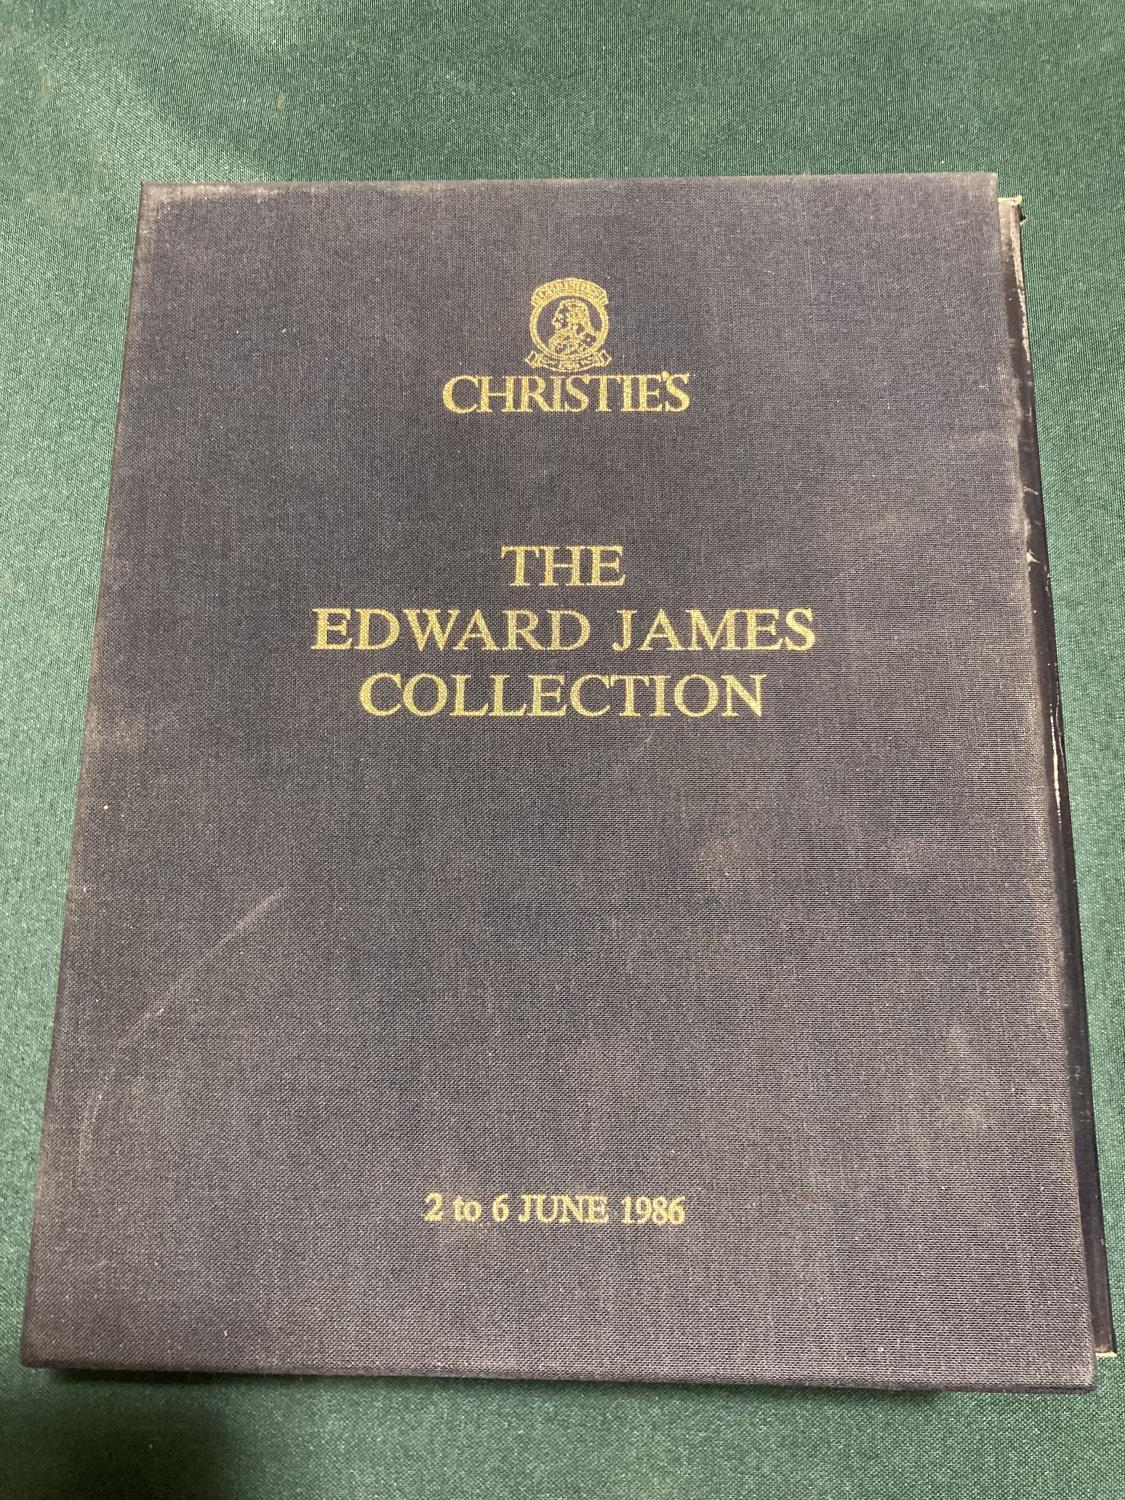 Auction Catalogues. The Andy Warhol Collection, 6 volumes, Sotheby's, 1988; The Edward James - Image 3 of 12